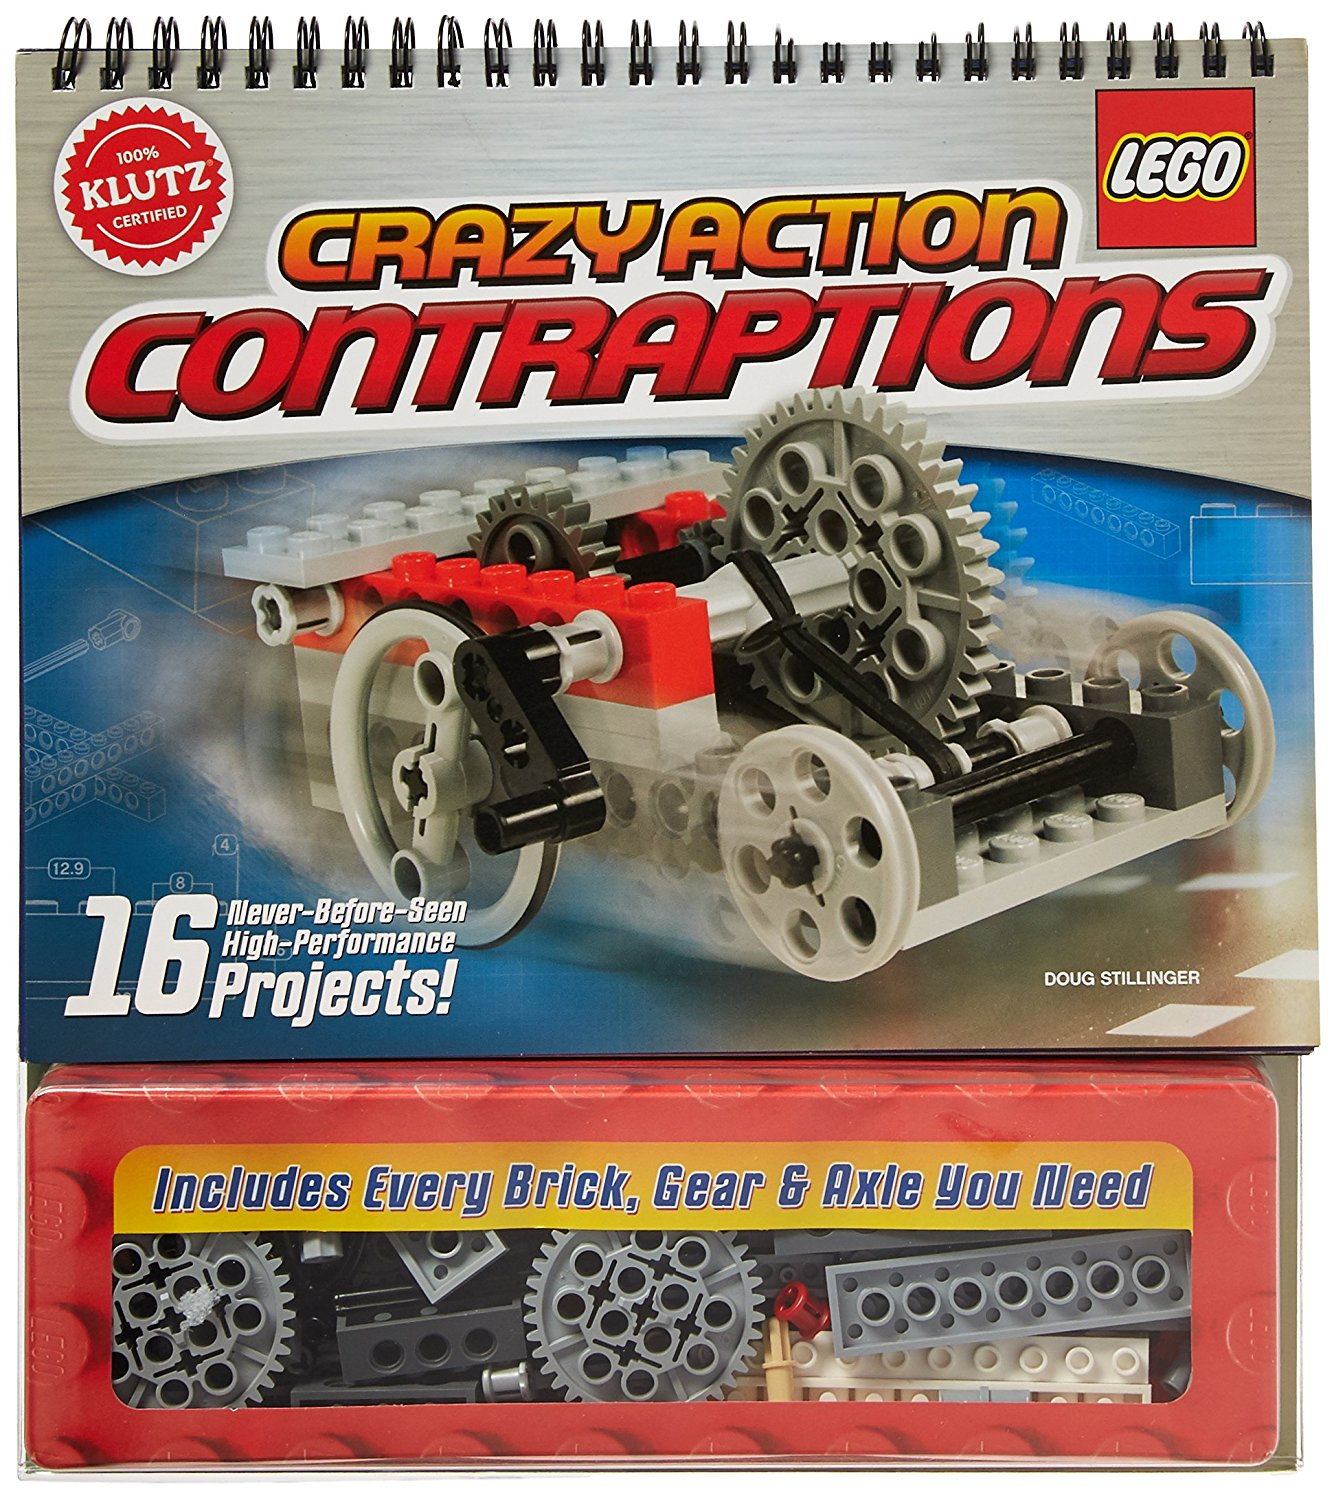 Best Lego Christmas Holiday Gifts for Kids Under 10 : christmas gifts for coworkers under 10 - princetonregatta.org